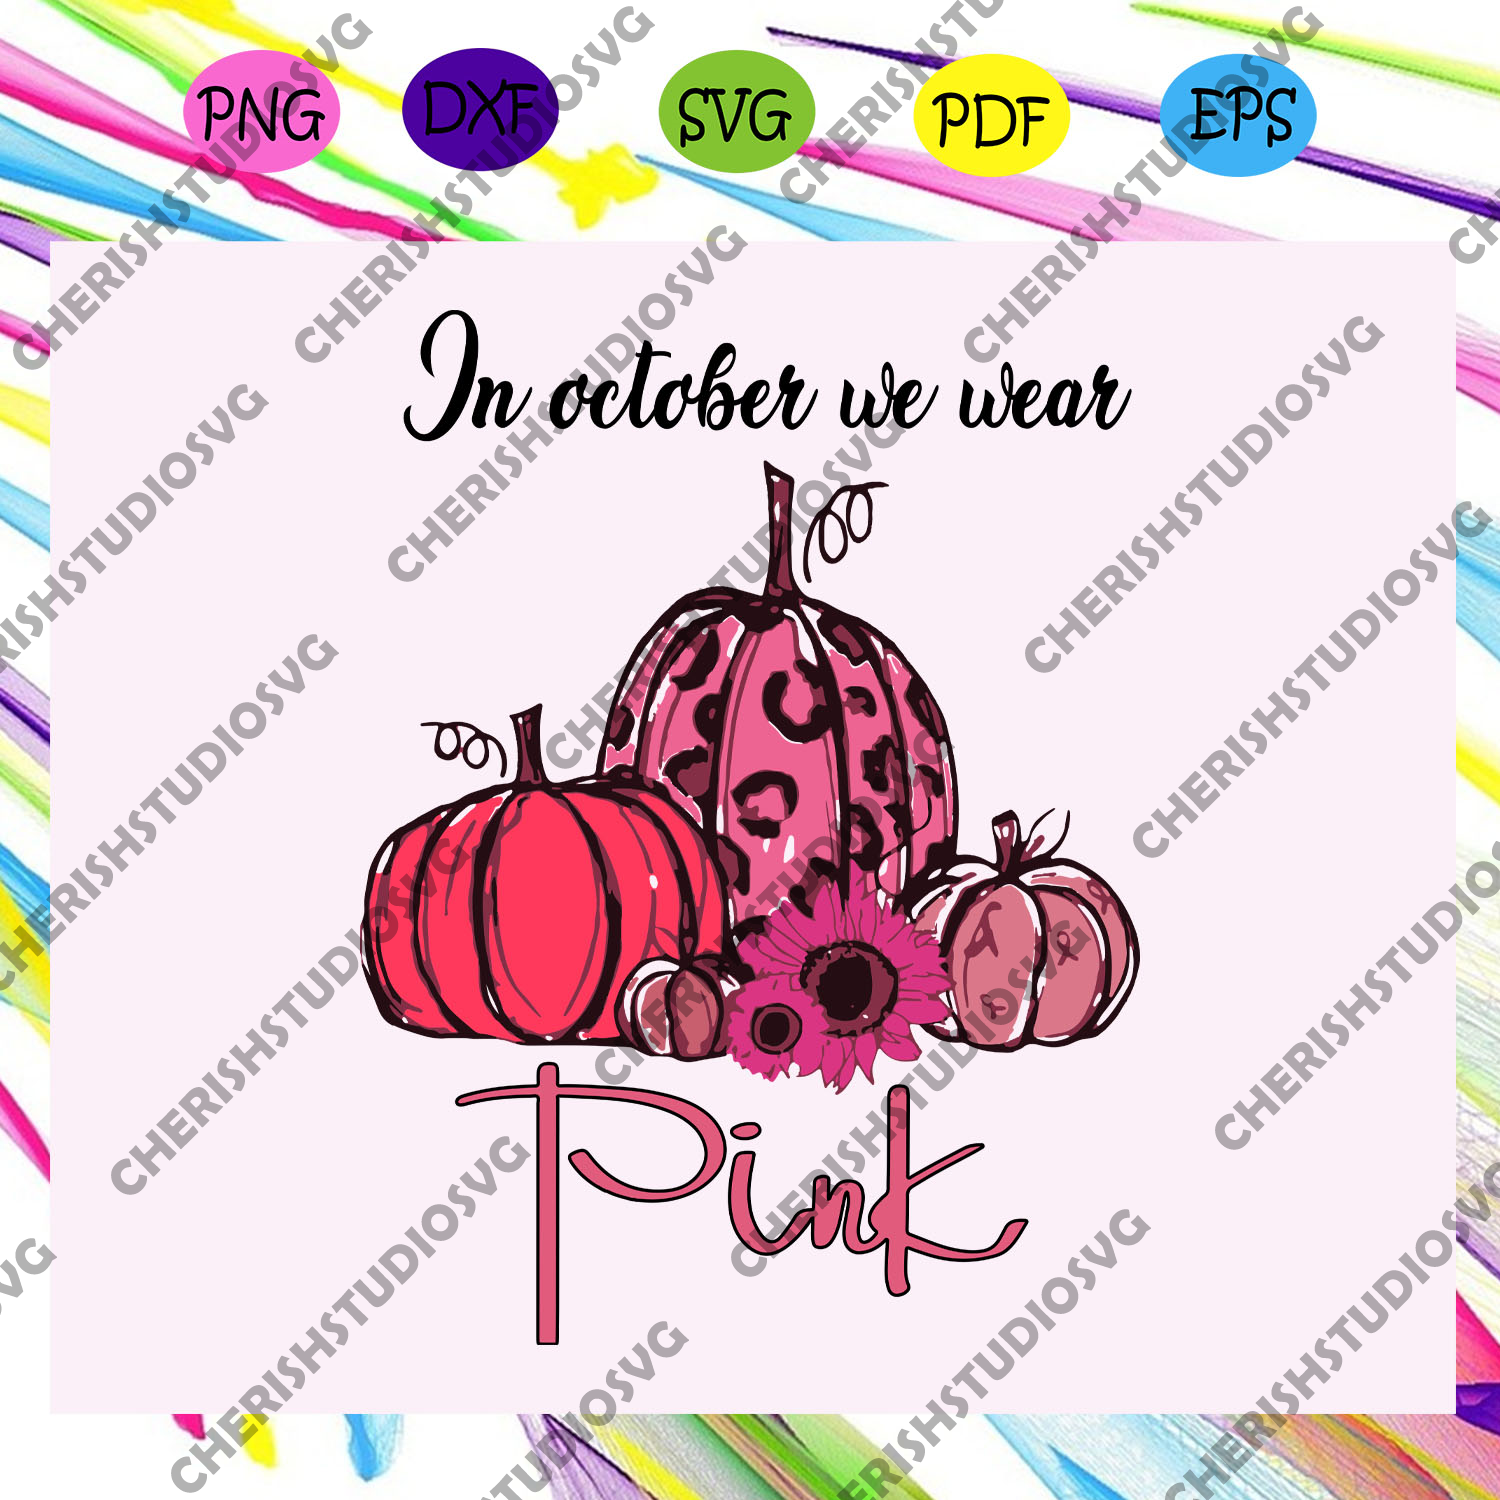 In October we wear pink, pink up, breast cancer, breast cancer svg, breast cancer ribbon, trending svg For Silhouette, Files For Cricut, SVG, DXF, EPS, PNG Instant Download